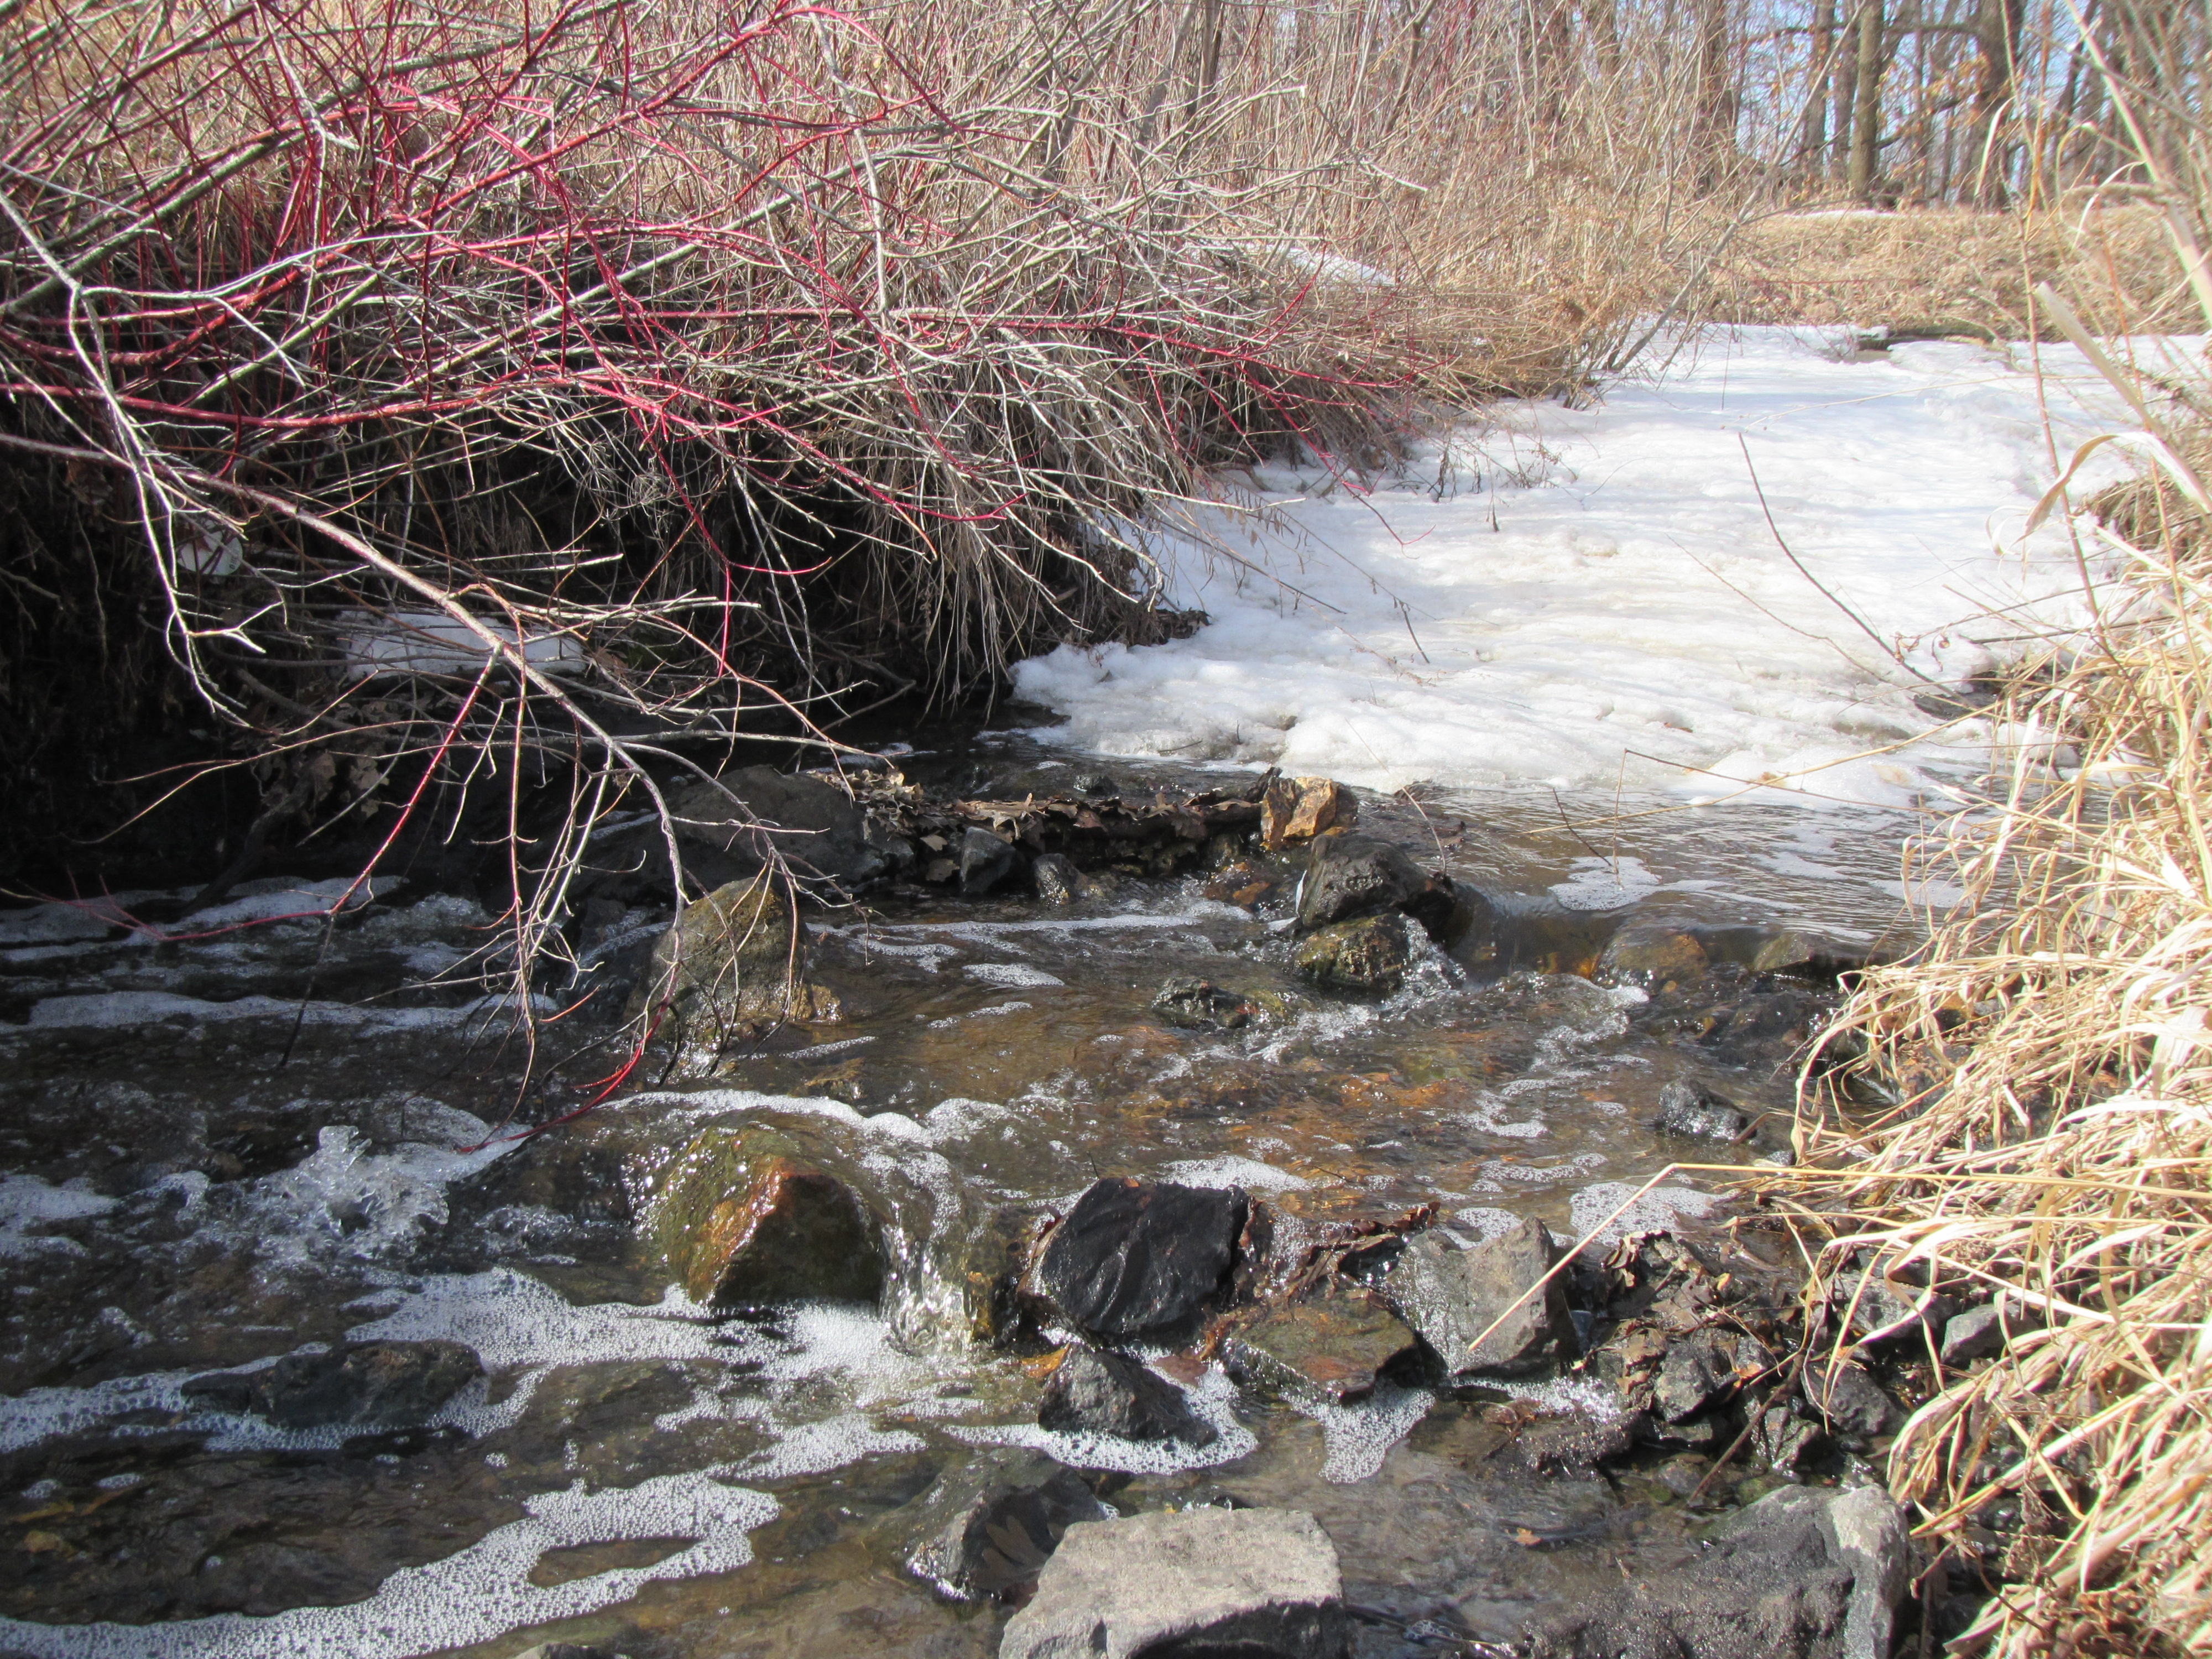 Bluff_Creek_2018Mar16_ice_and_riffles_in_restoration_area.JPG